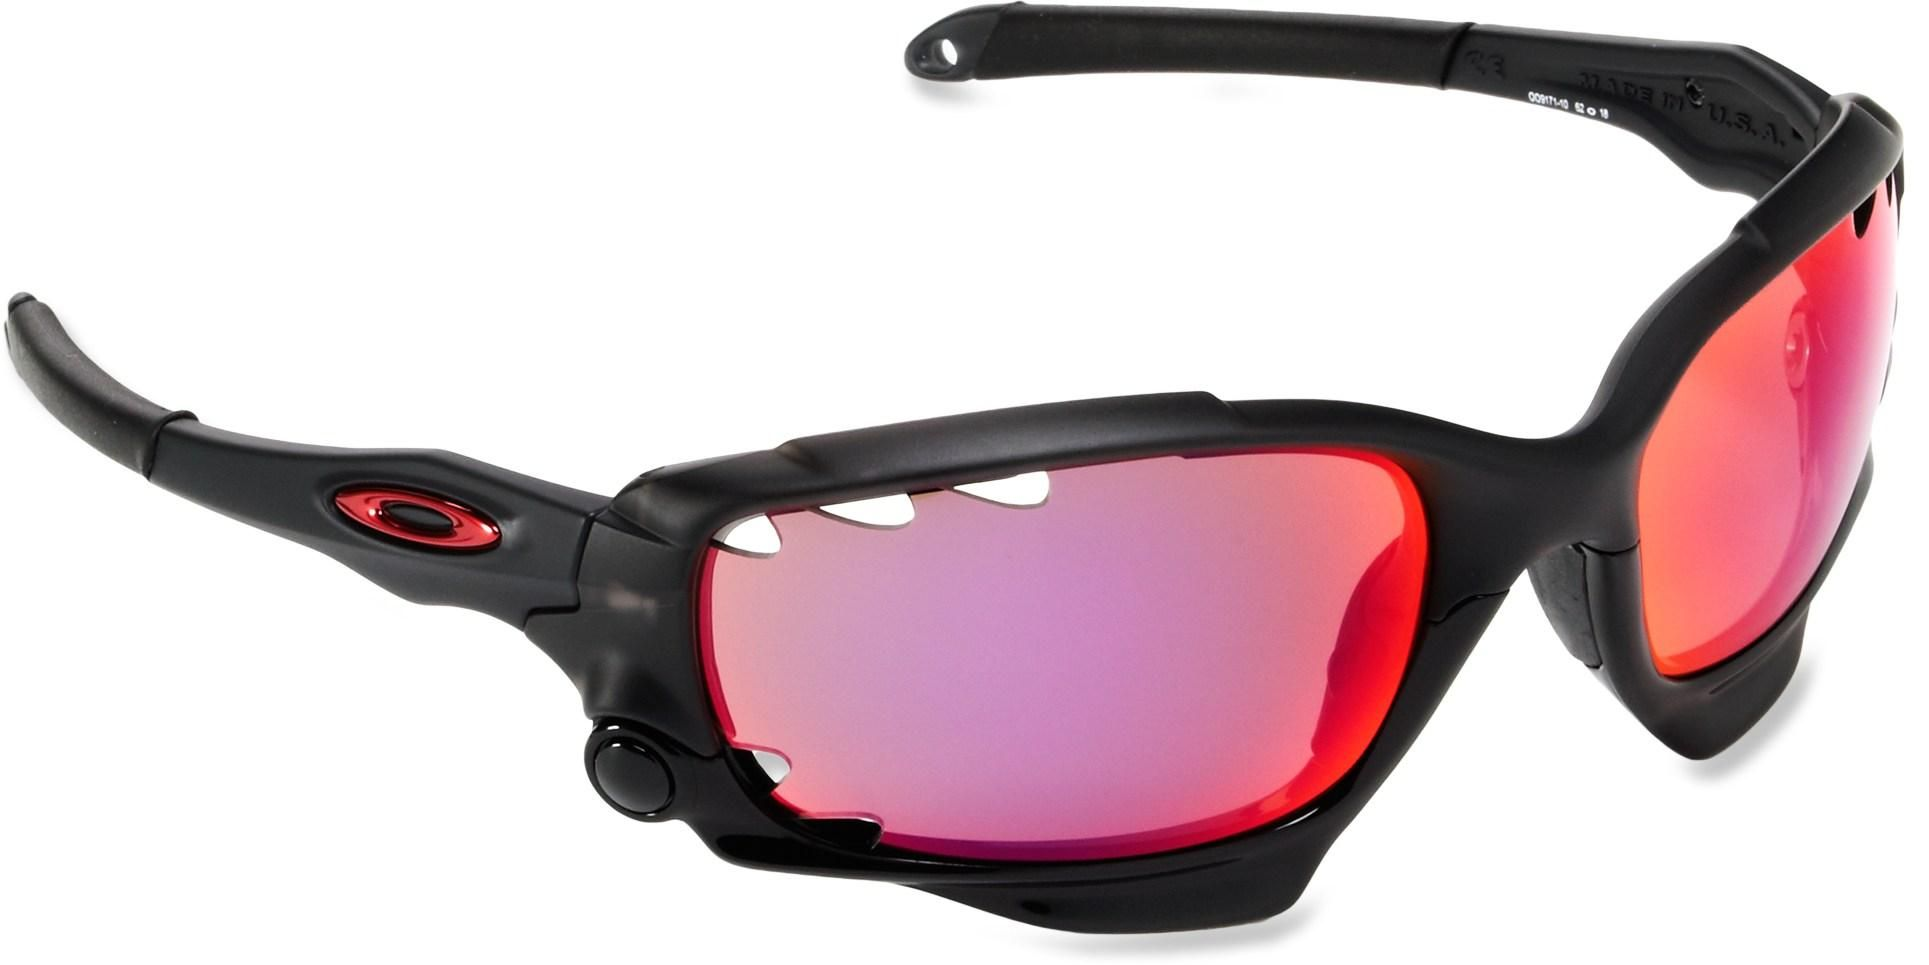 oakley racing jacket polarized sunglasses  17 best ideas about oakley racing jacket on pinterest